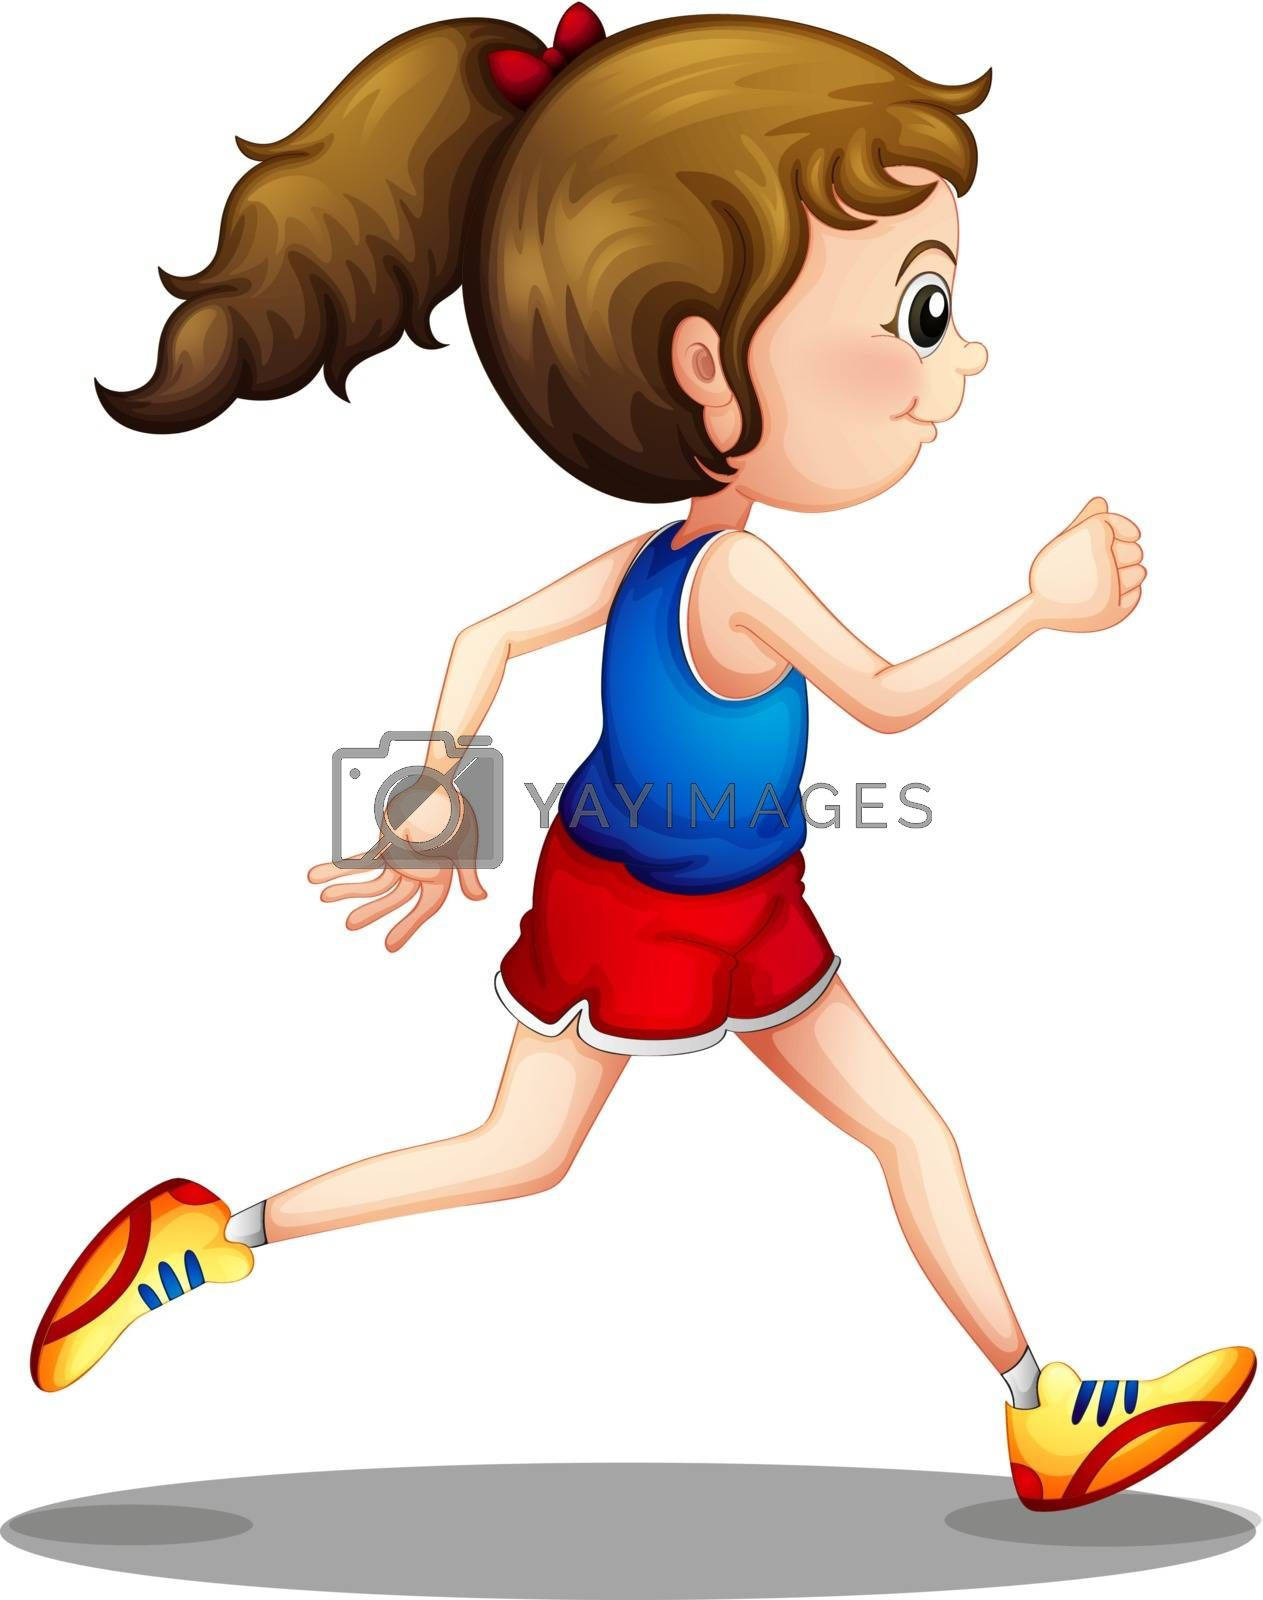 Illustration of a young girl running on a white background